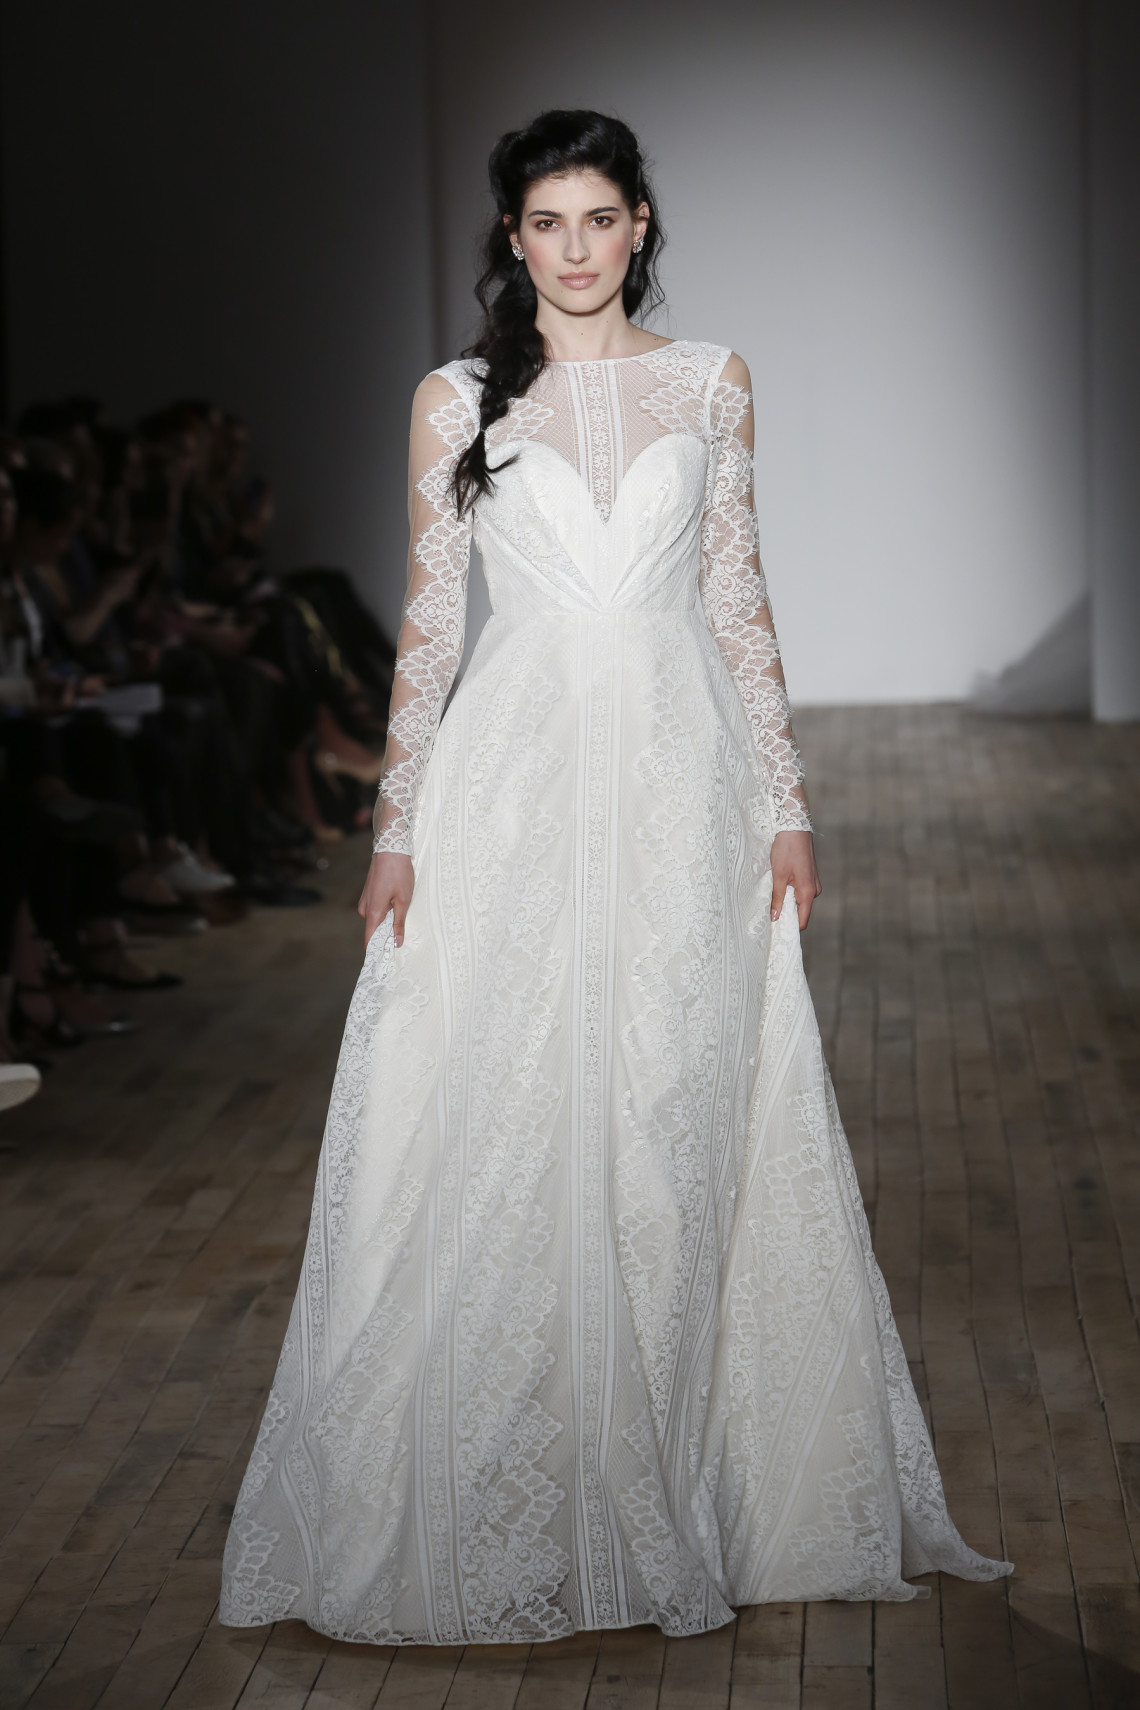 10 Years of Celebrity-Inspired Wedding Dress Trends - WeddingWire